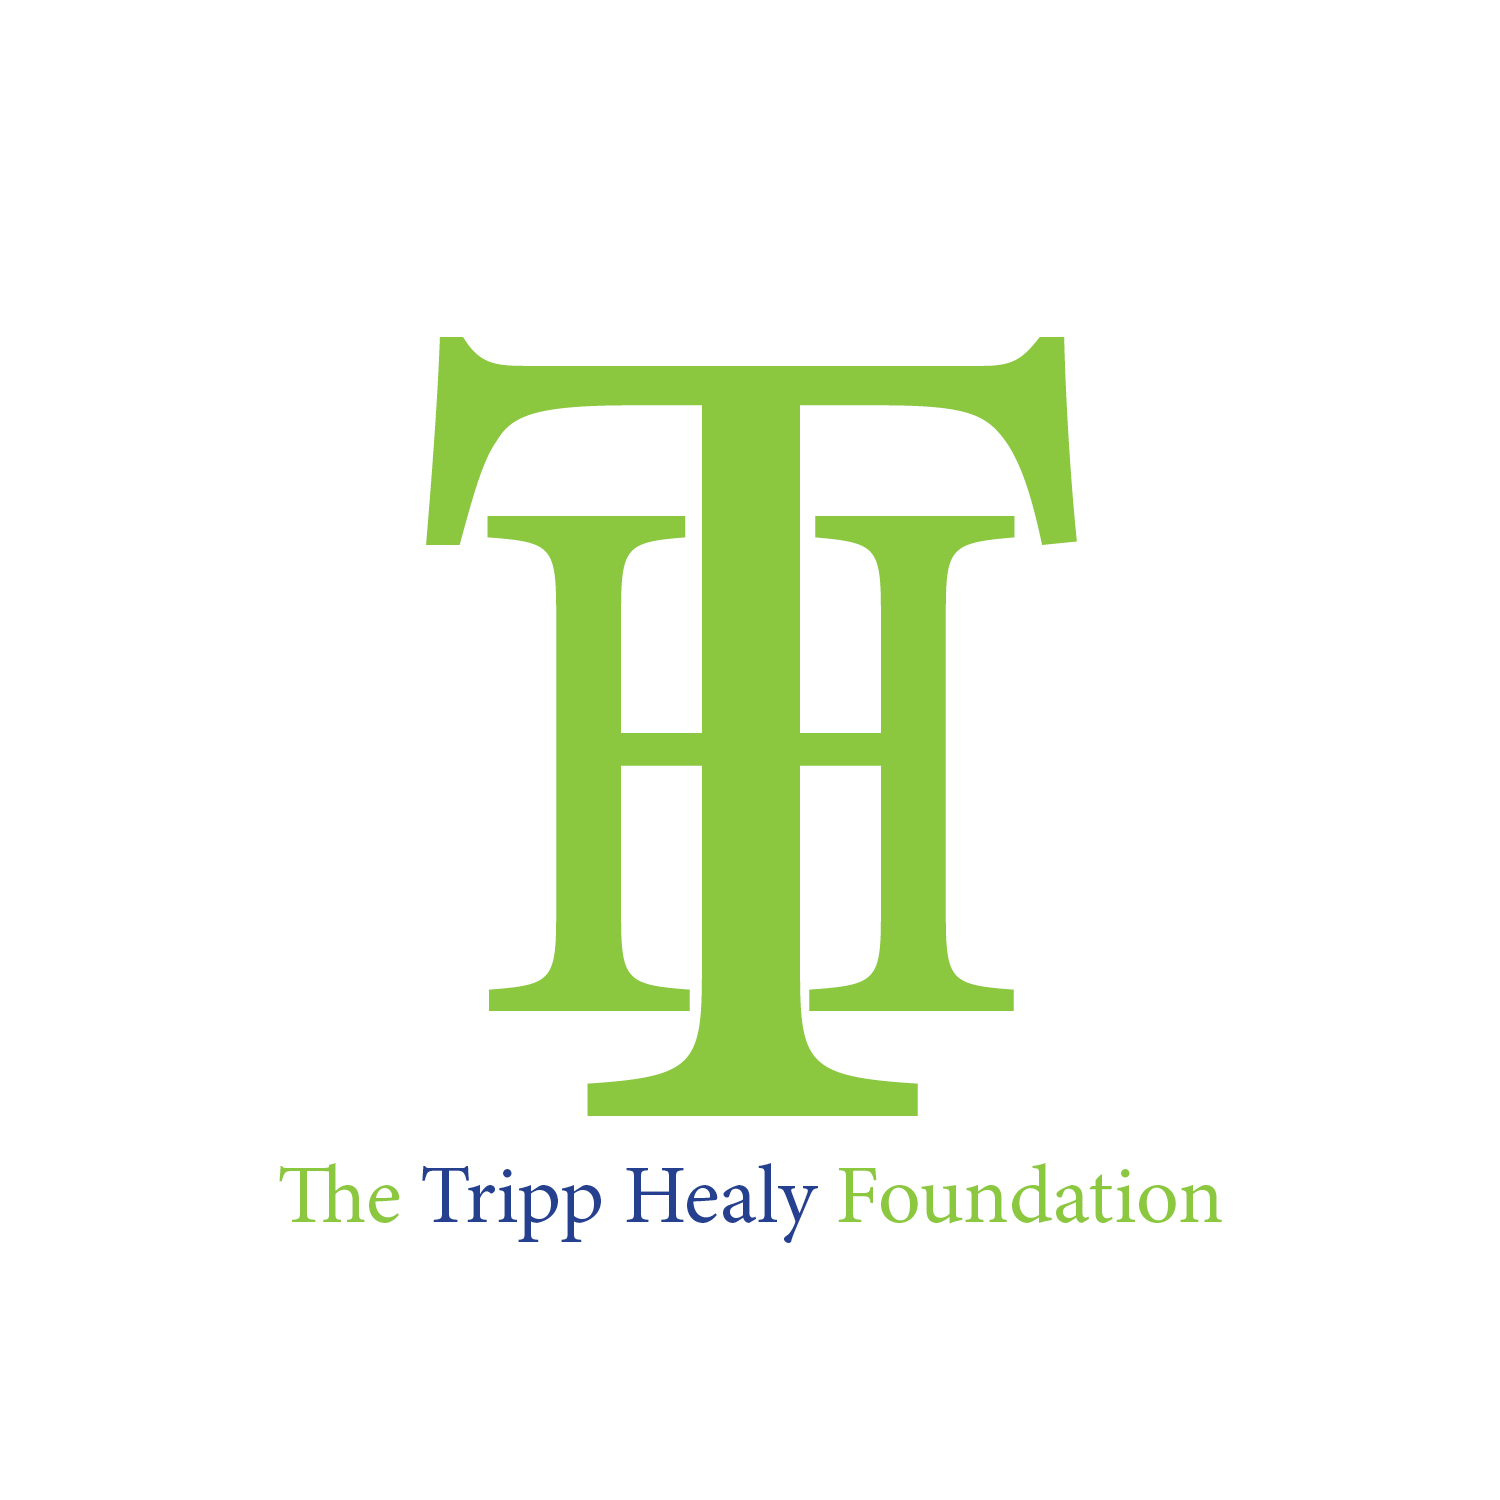 The Tripp Healy Foundation